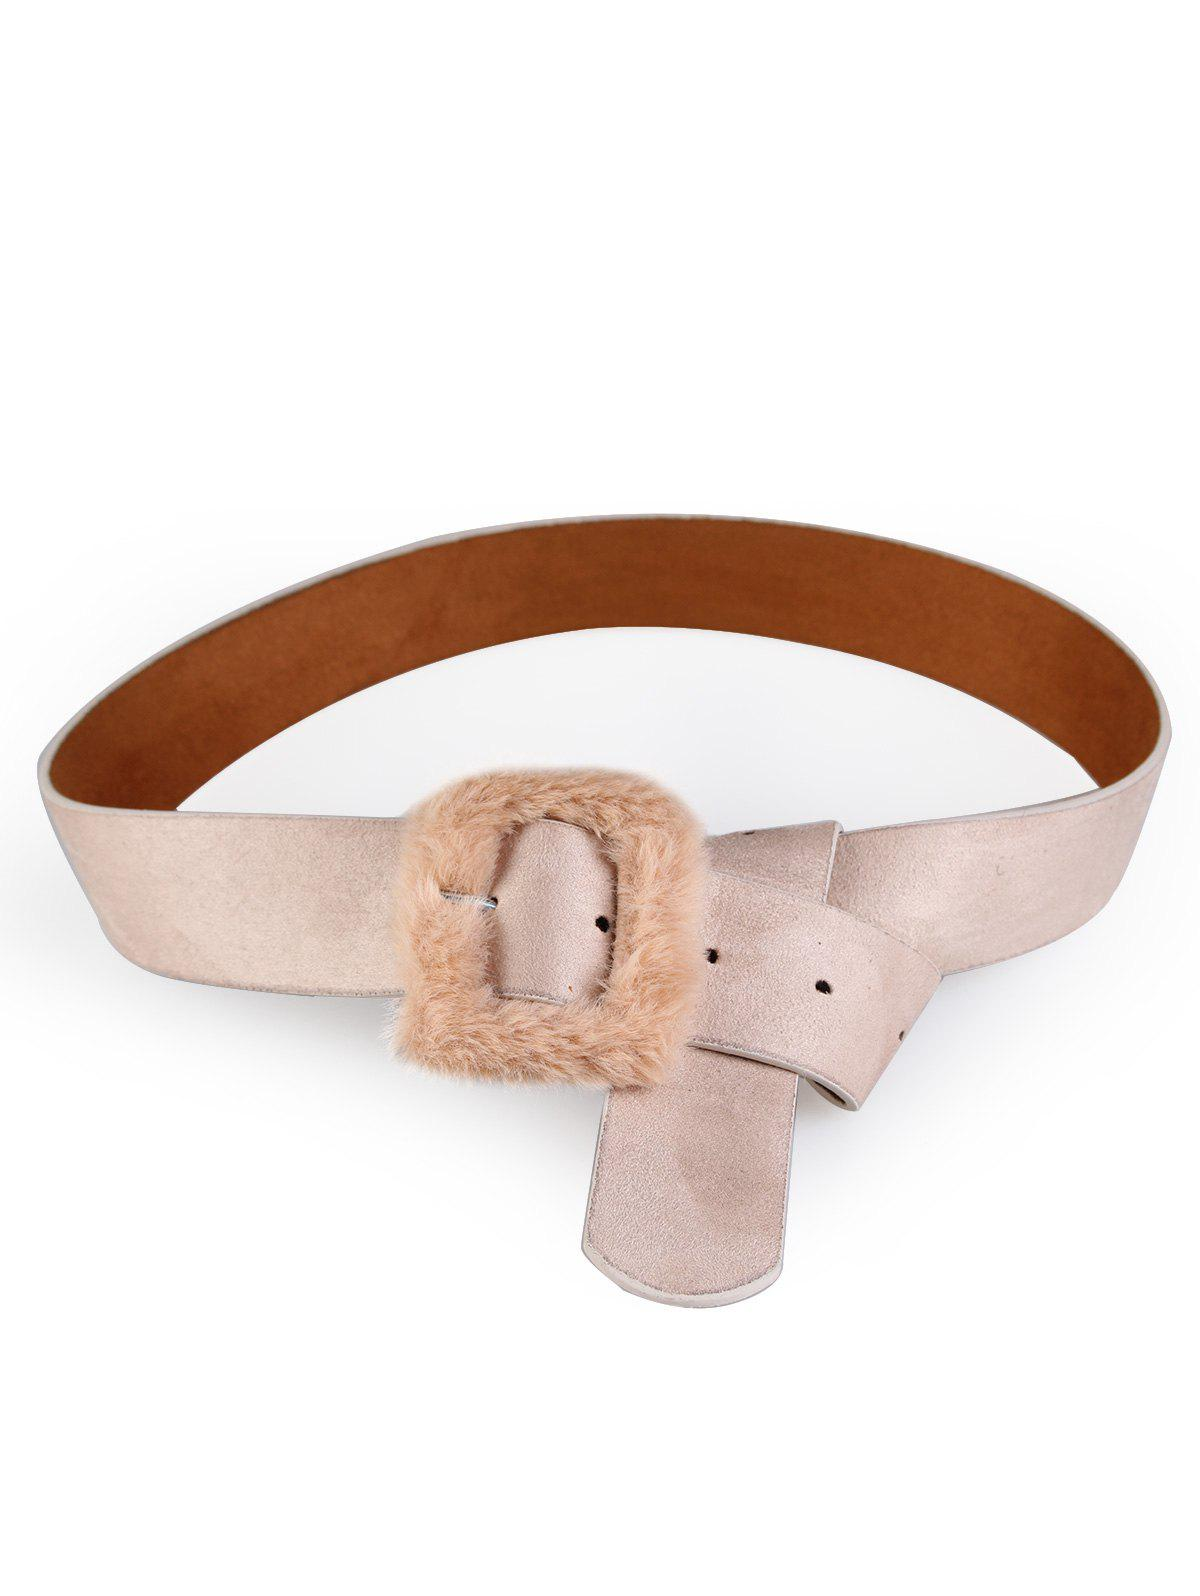 Outfits Vintage Furry Buckle Embellished Faux Leather Waist Belt